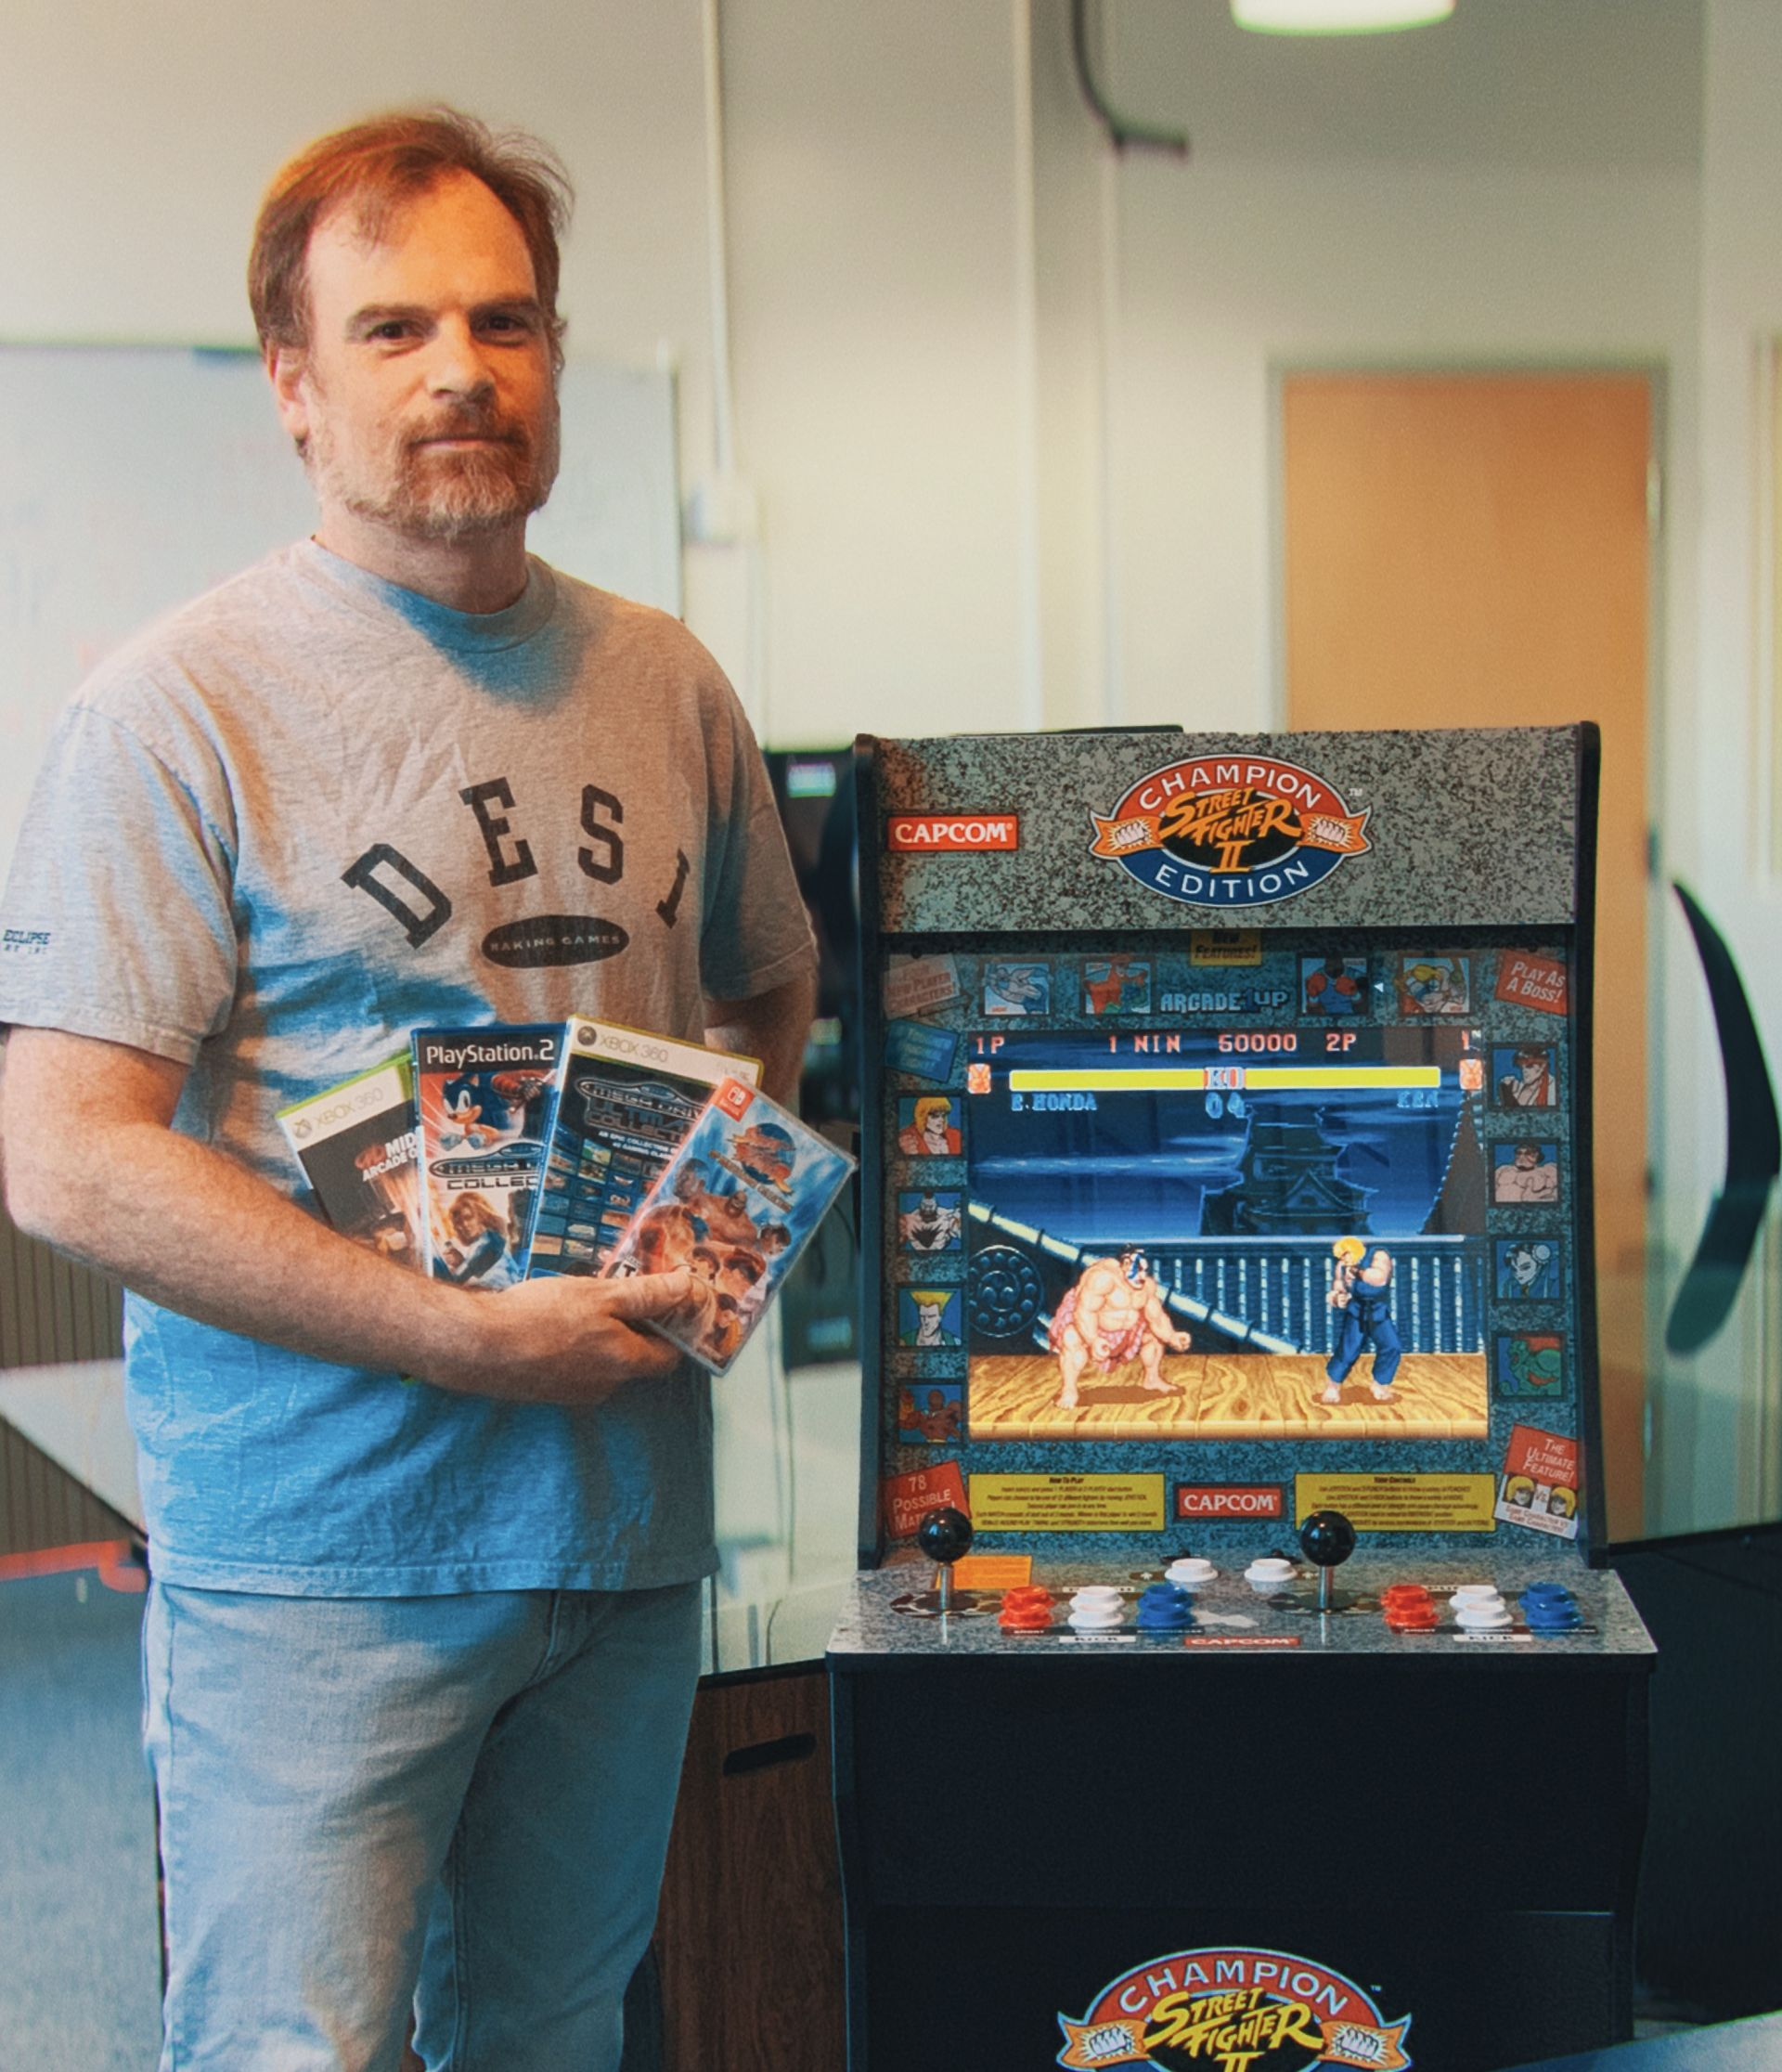 Daniel Filner, emulation programmer for Street Fighter 30th Anniversary Collection and Arcade1Up's SF2 cabinet.